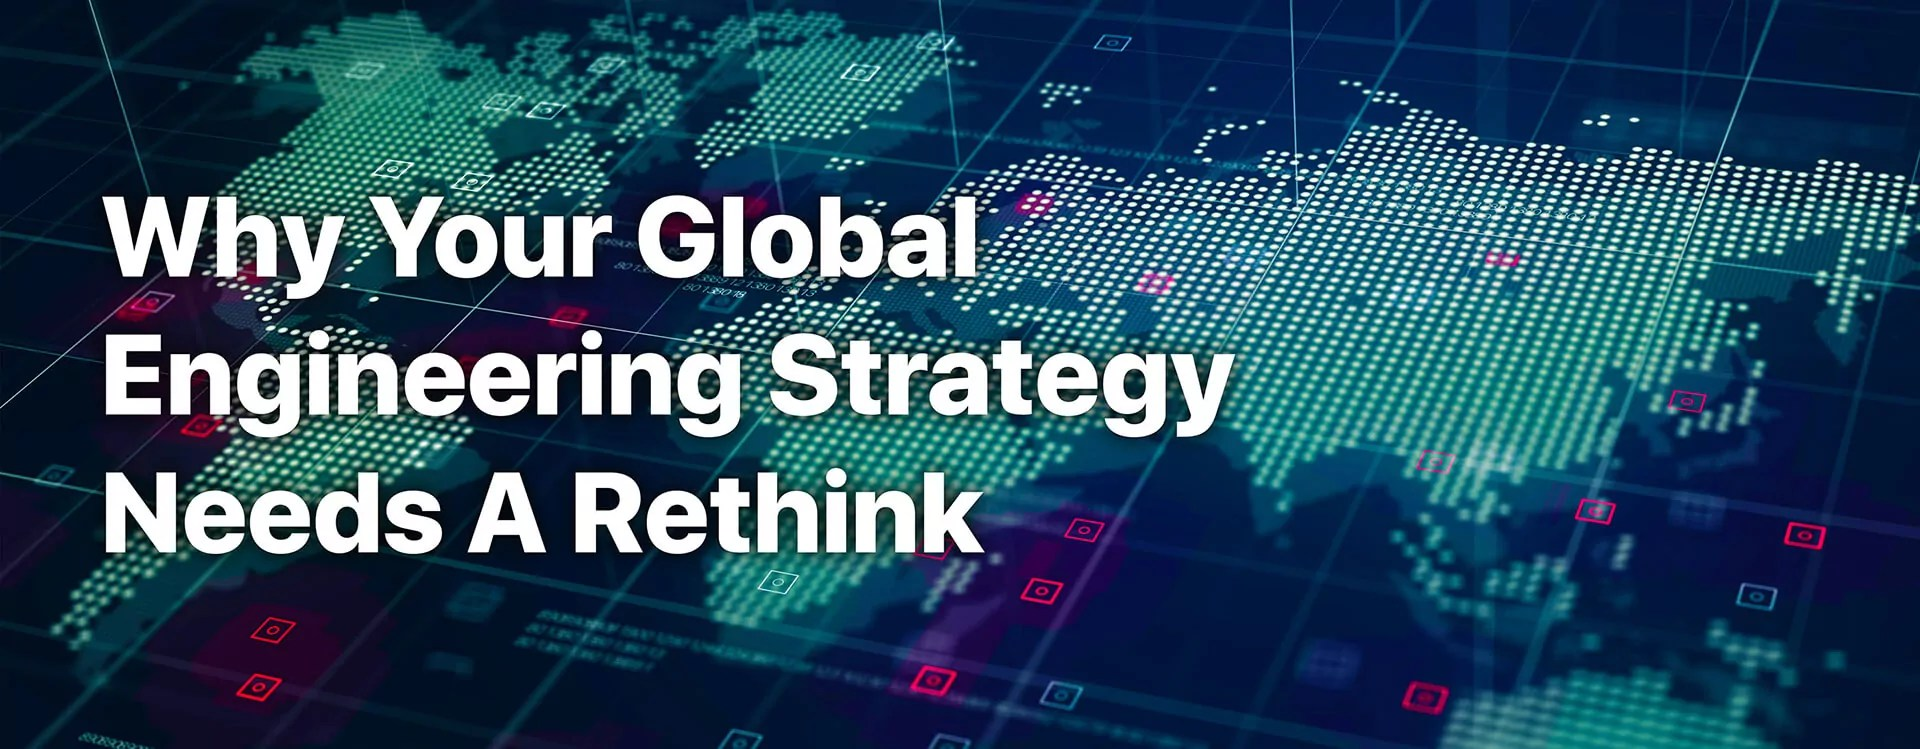 global engineering strategy